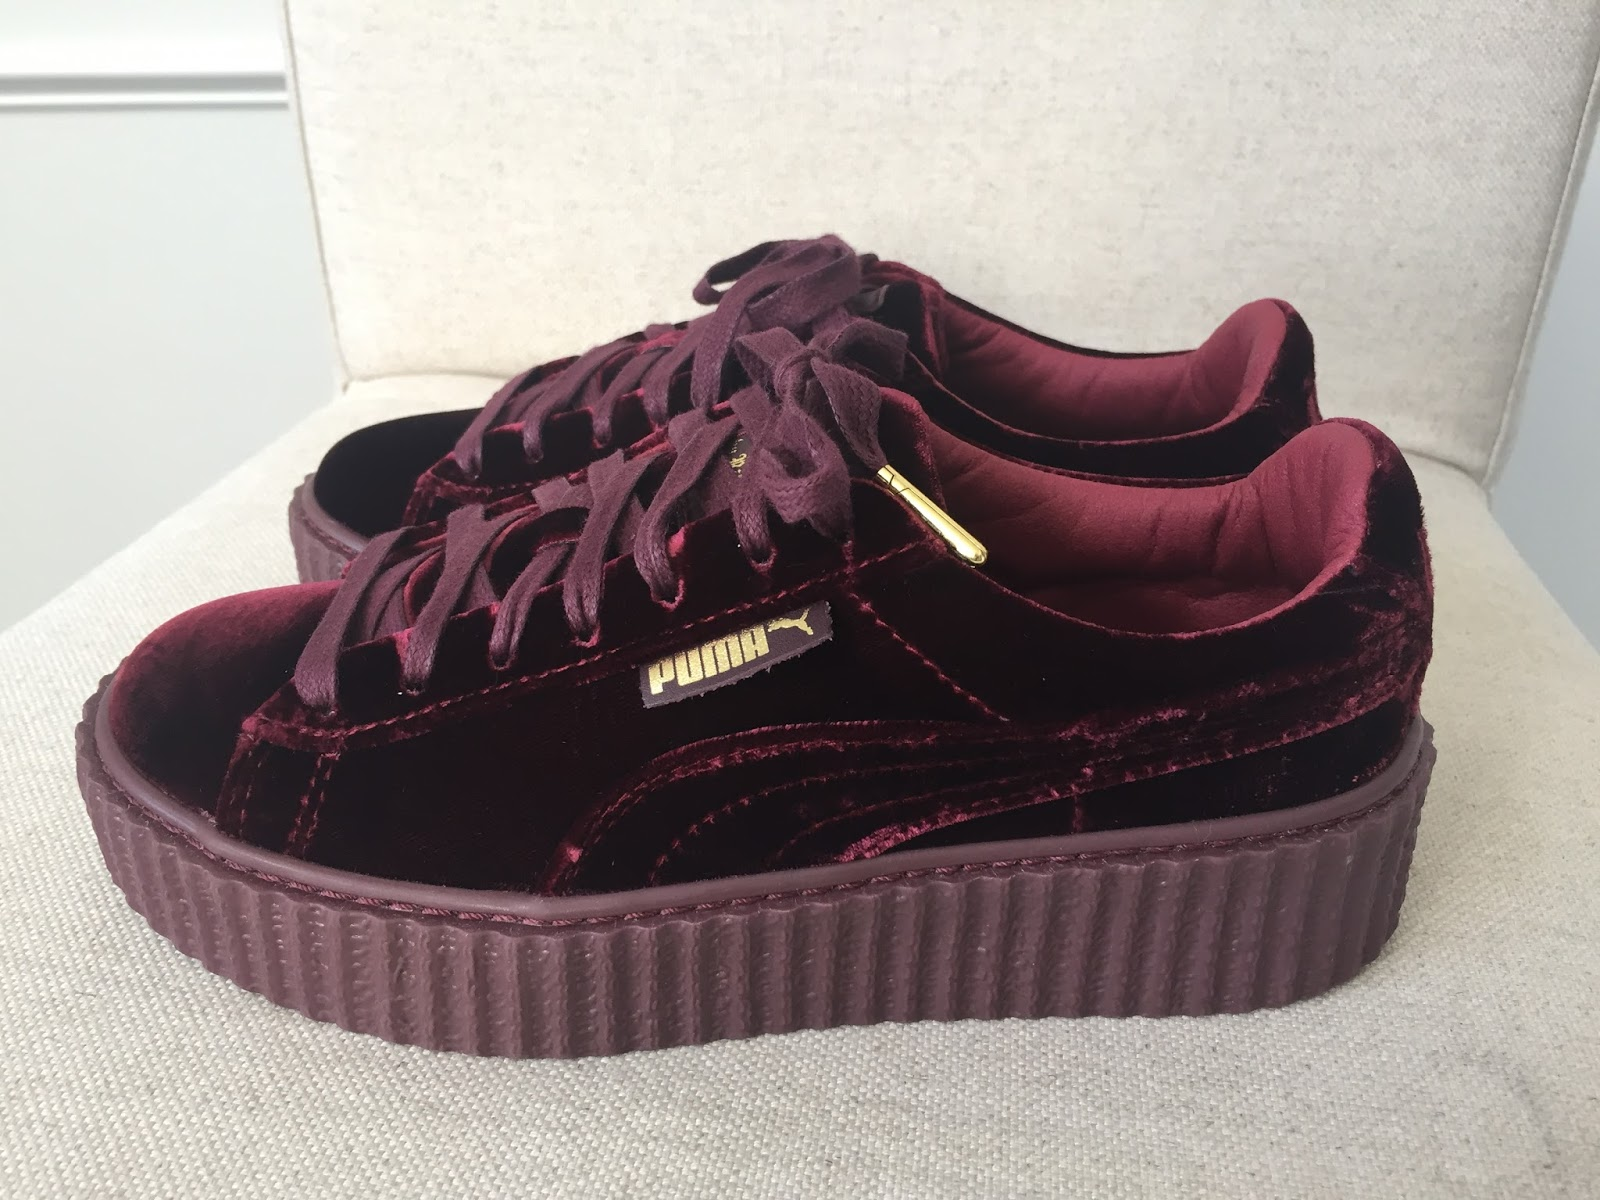 best website e5d39 6eedd Petite Impact: Fit Review Fenty Puma Rihanna Velvet Creepers